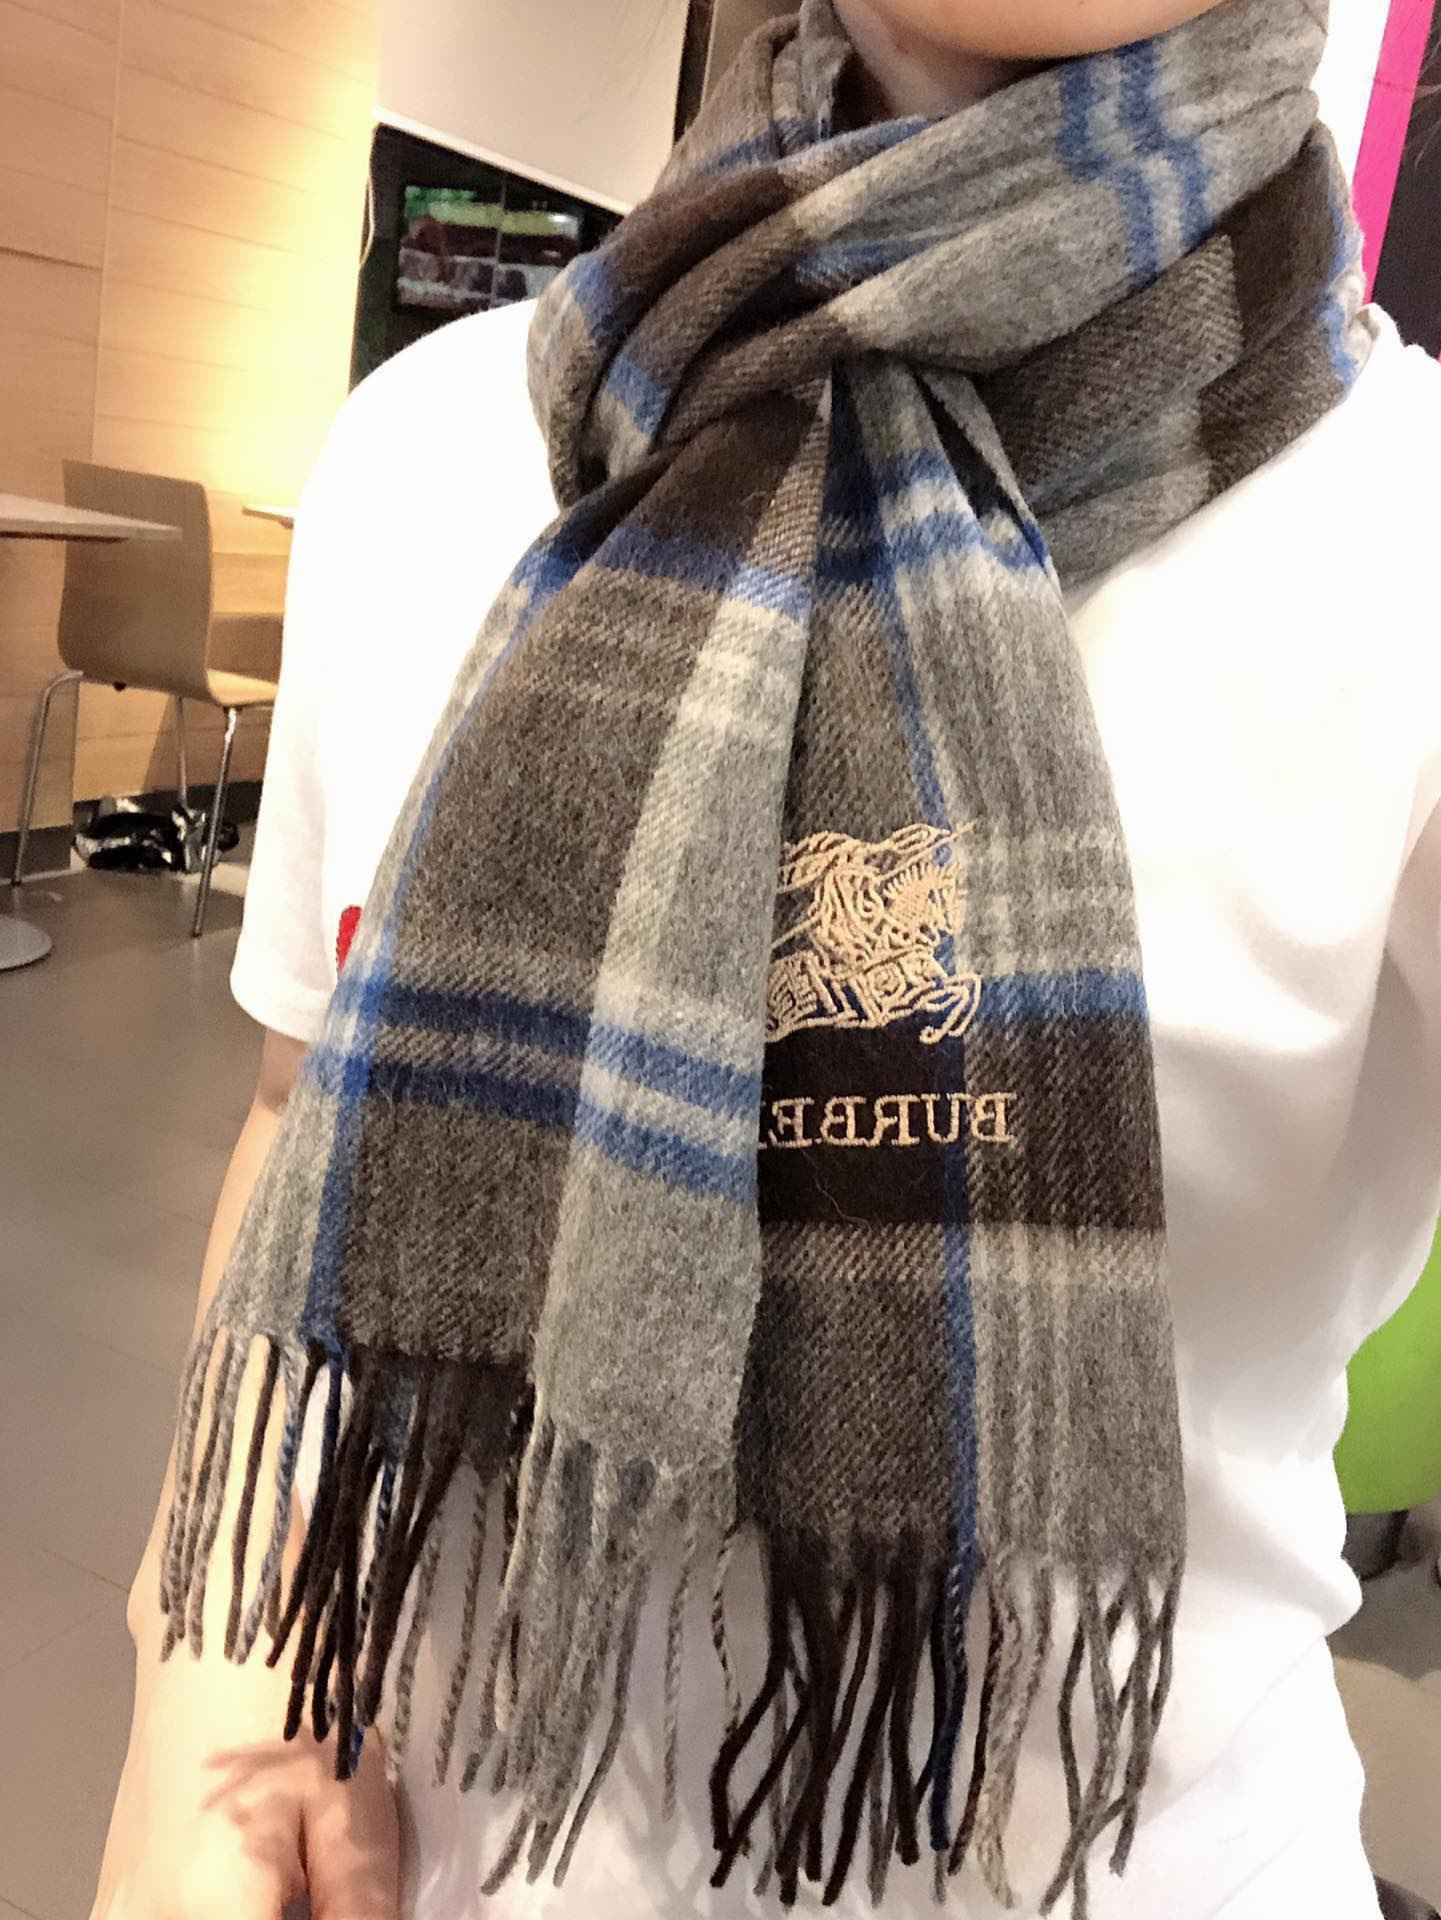 Cheap Replica Burberry Scarf 0024